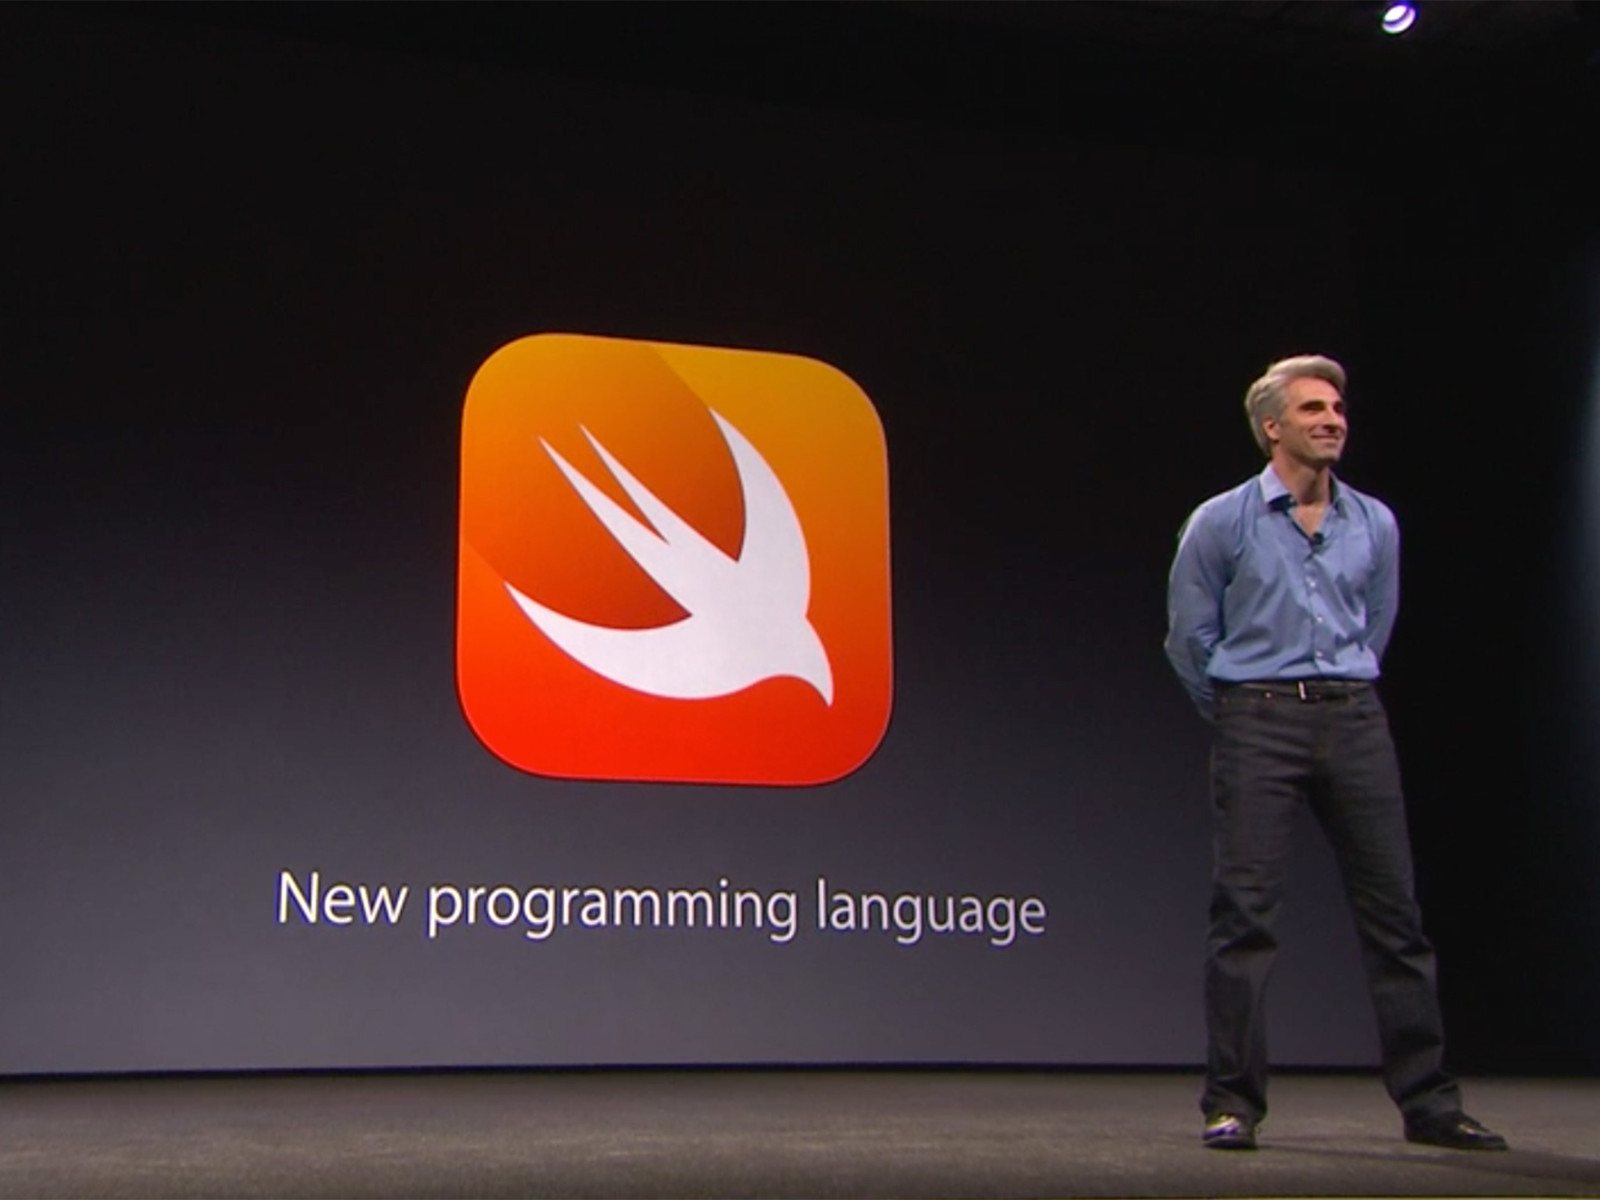 Swift jumps up 46 spots on the RedMonk programming language rankings